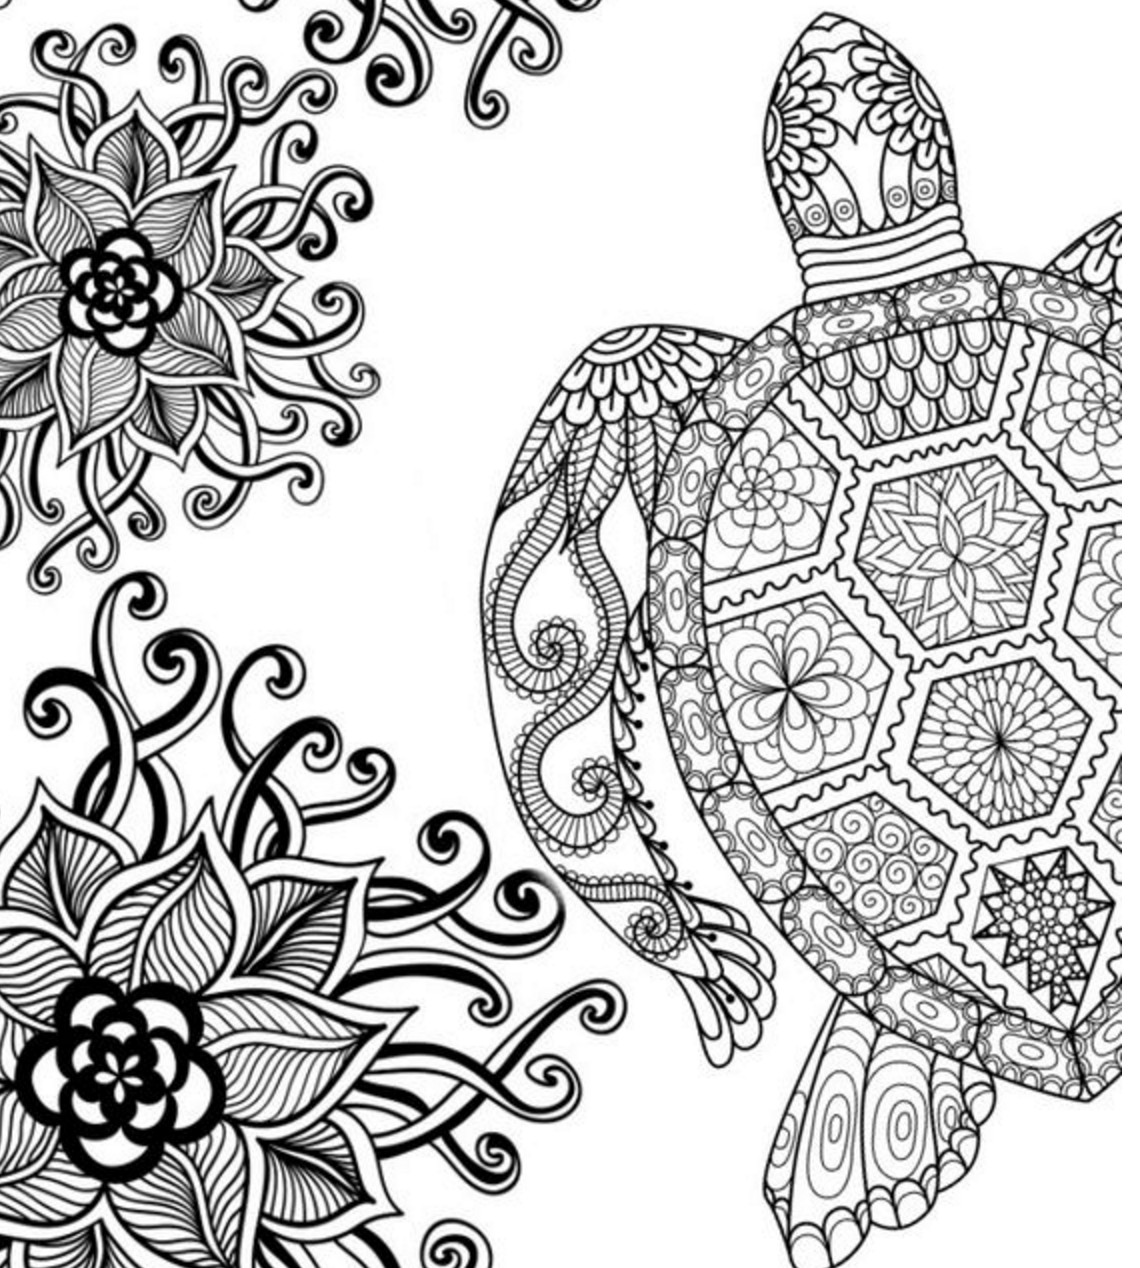 Adult Coloring Book Download  20 Free Adult Colouring Pages The Organised Housewife